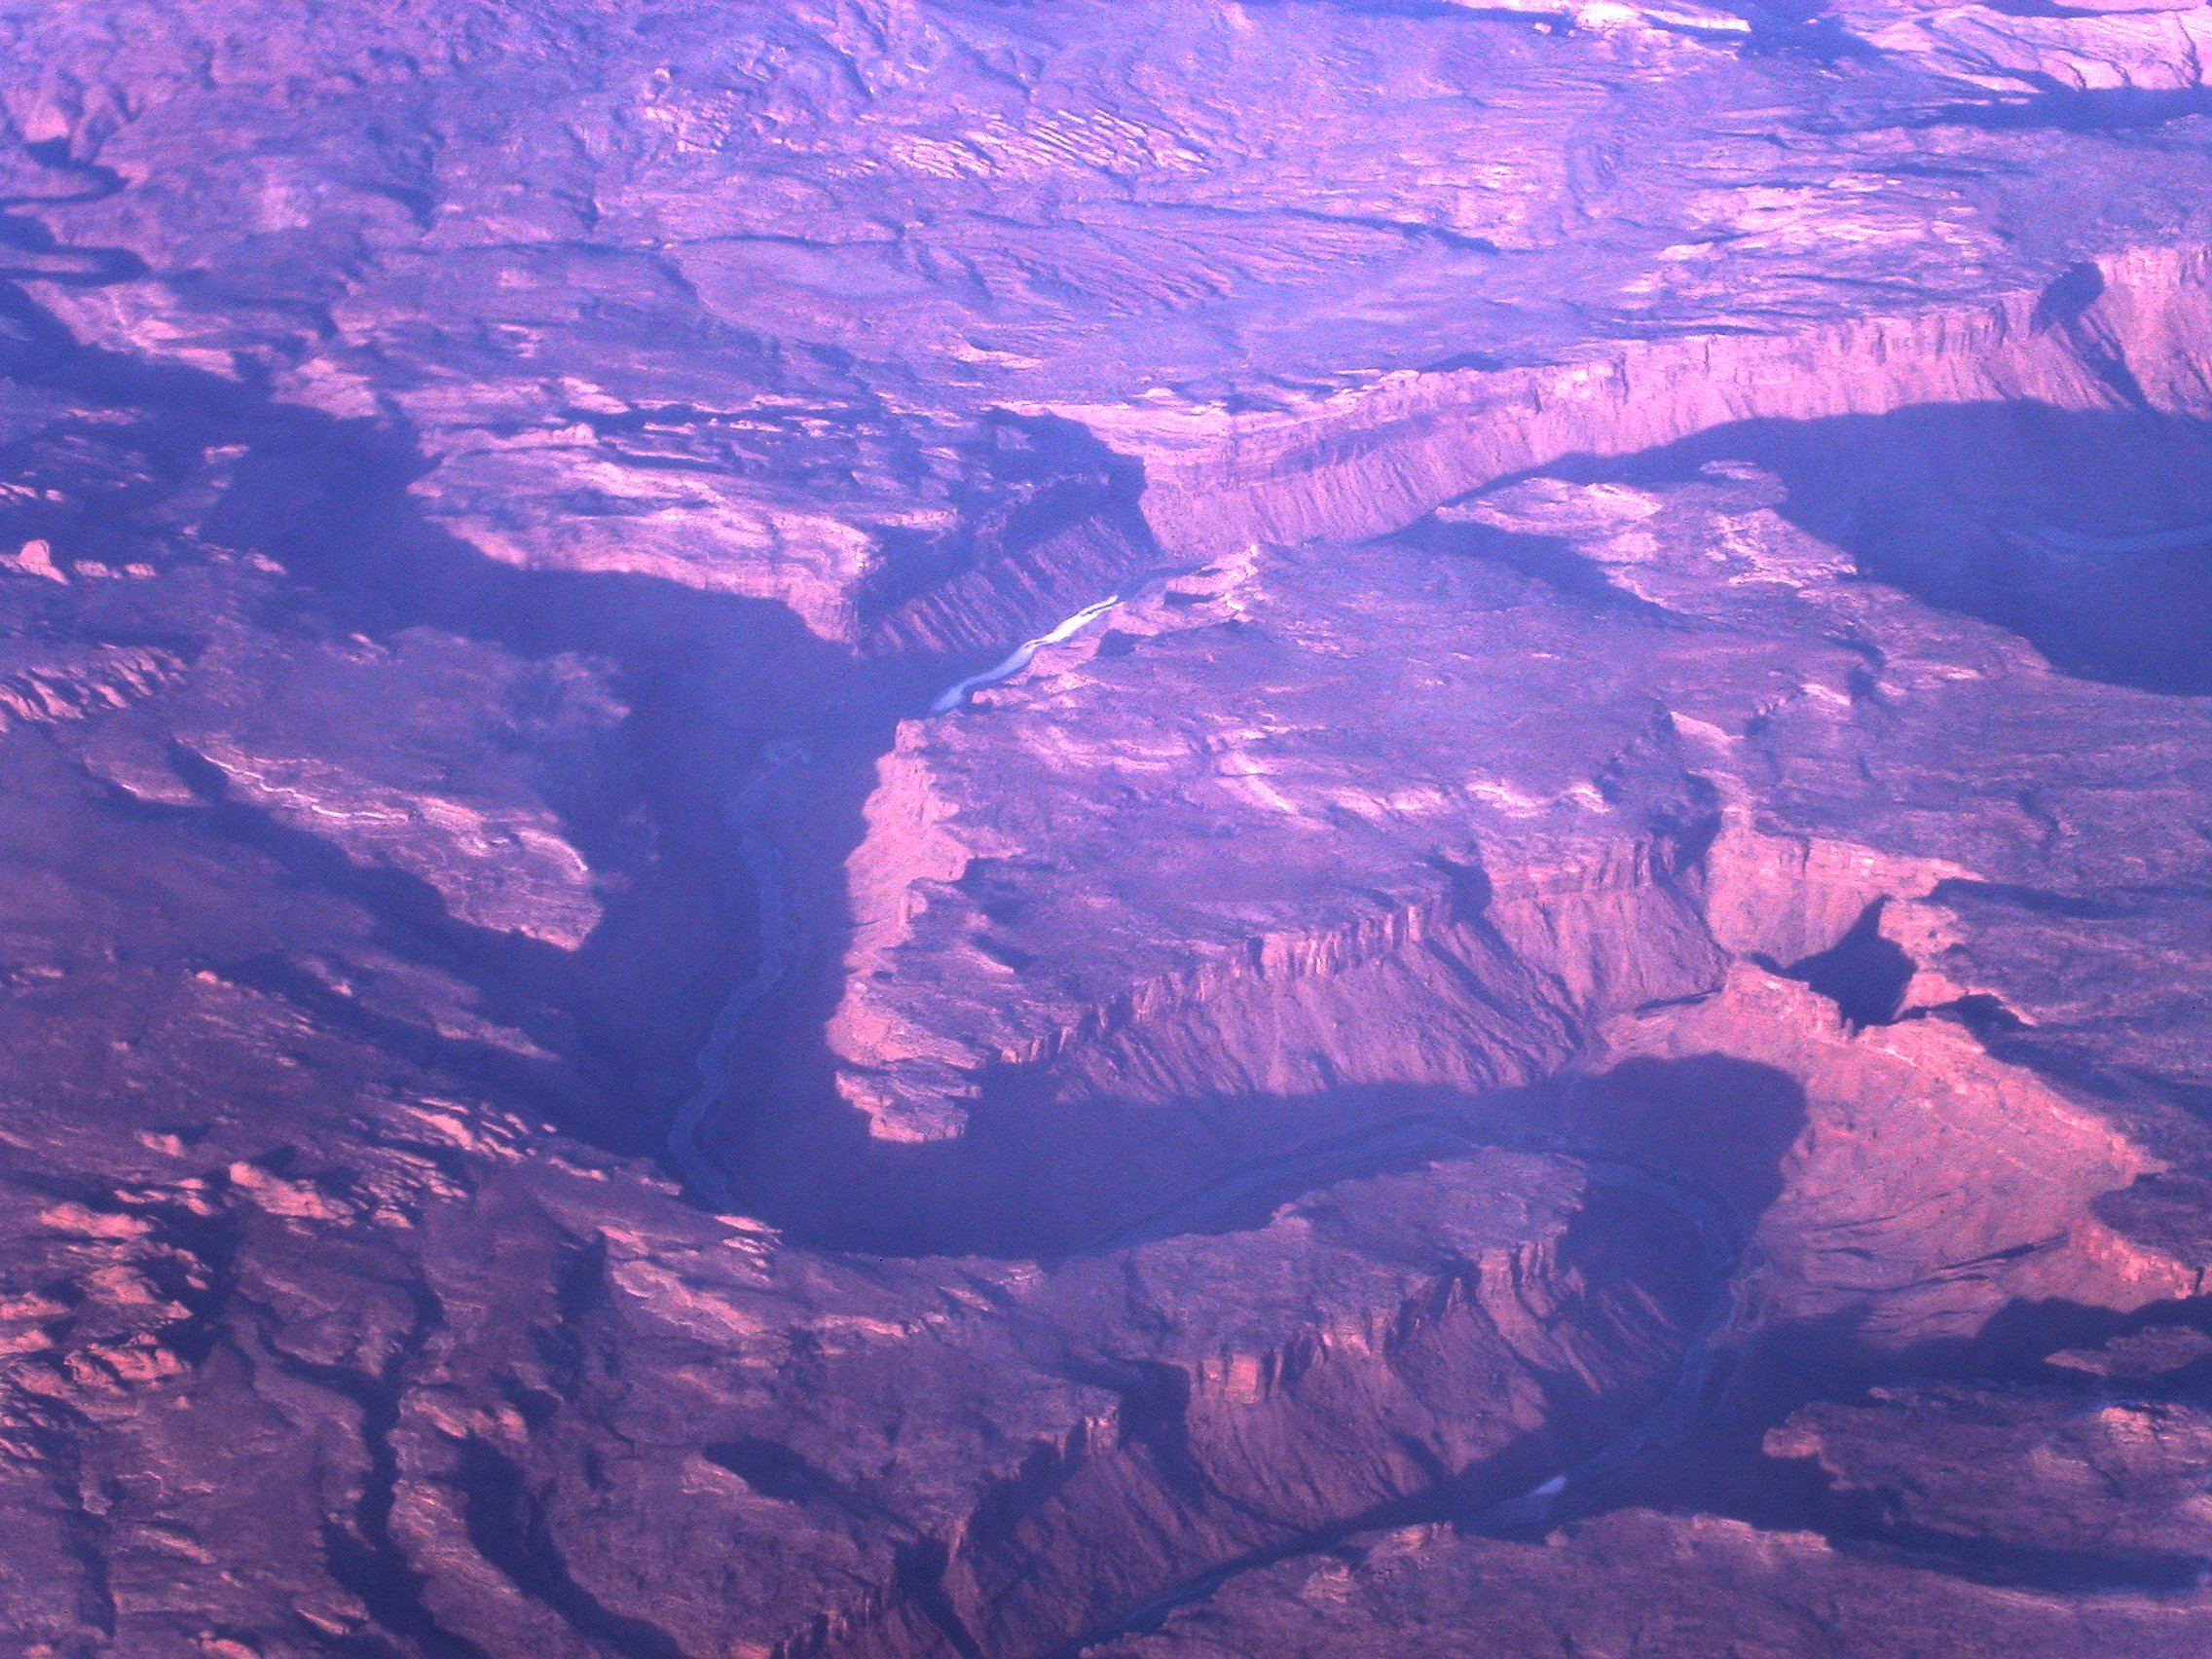 Canyon from airplane